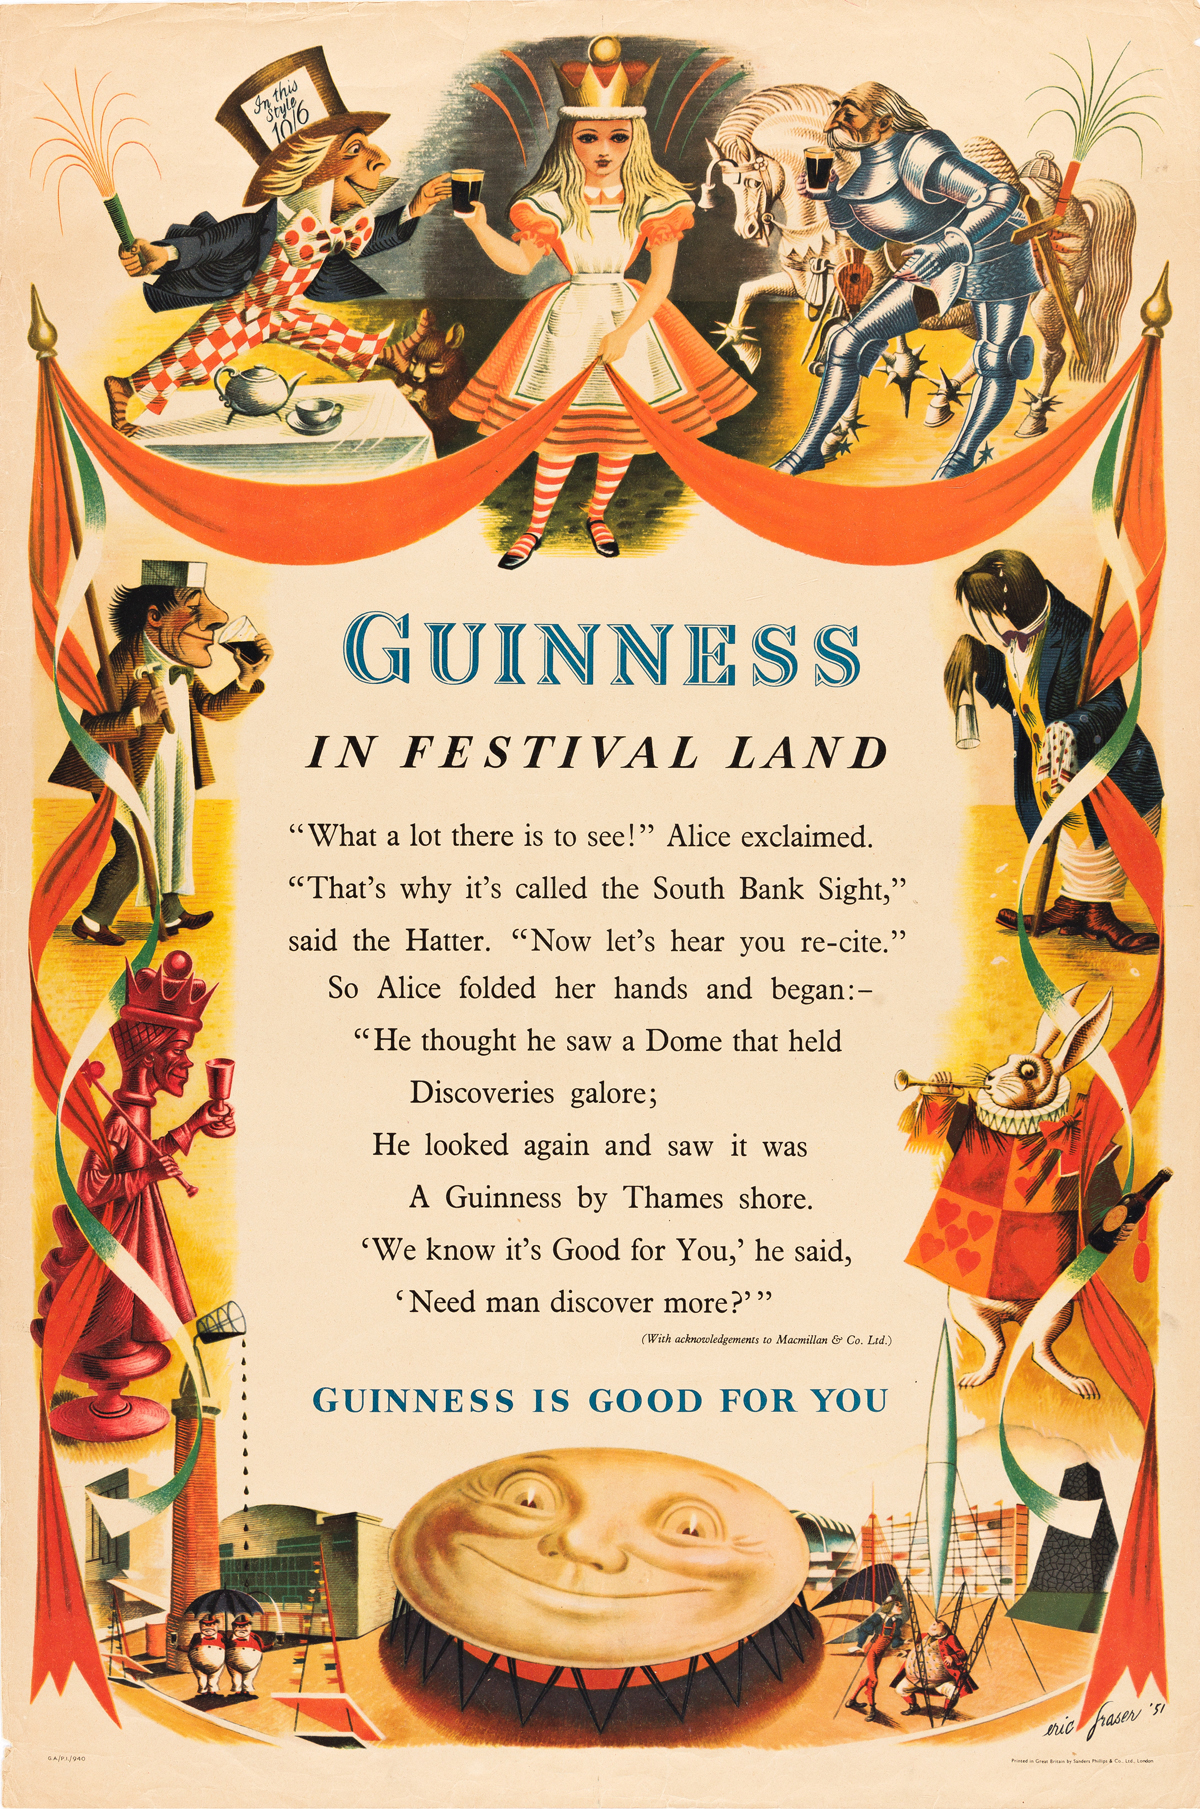 ERIC FRASER (1902-1983).  GUINNESS IN FESTIVAL LAND. 1951. 30x20 inches, 76x50 cm. Sanders Phillips & Co., Ltd., London.